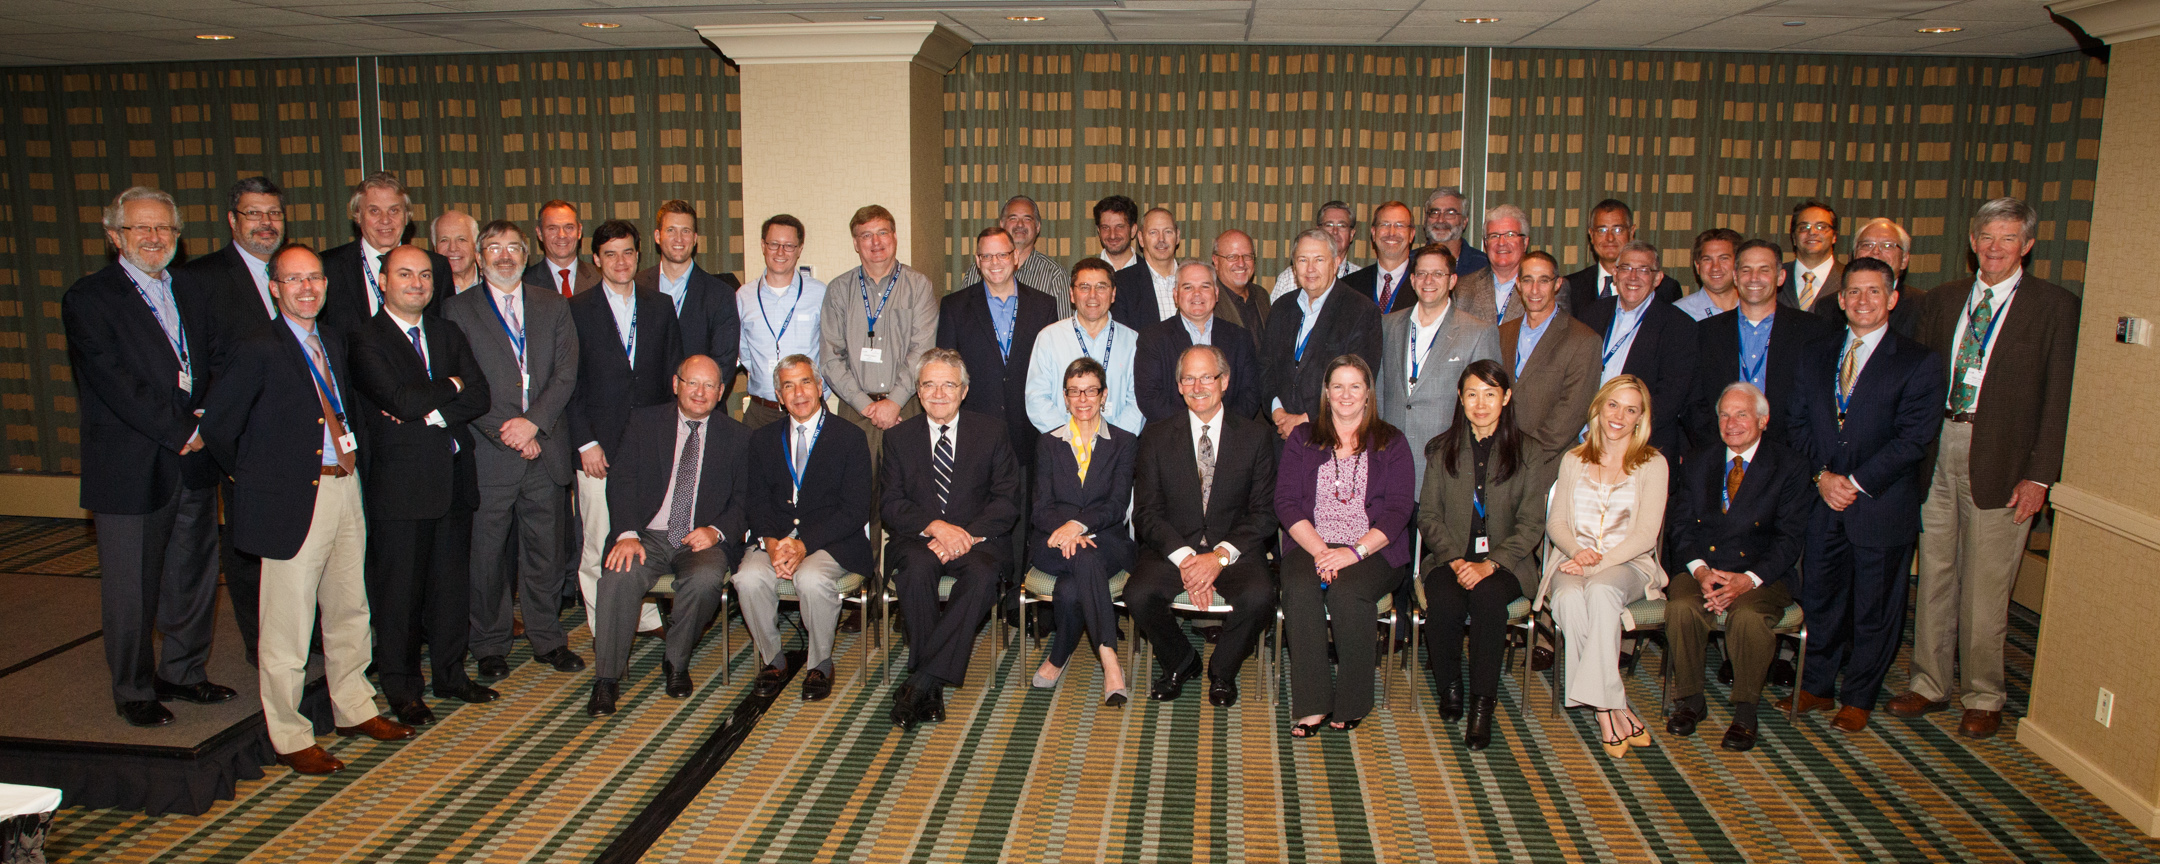 Group picture of Legal Netlink Alliance members